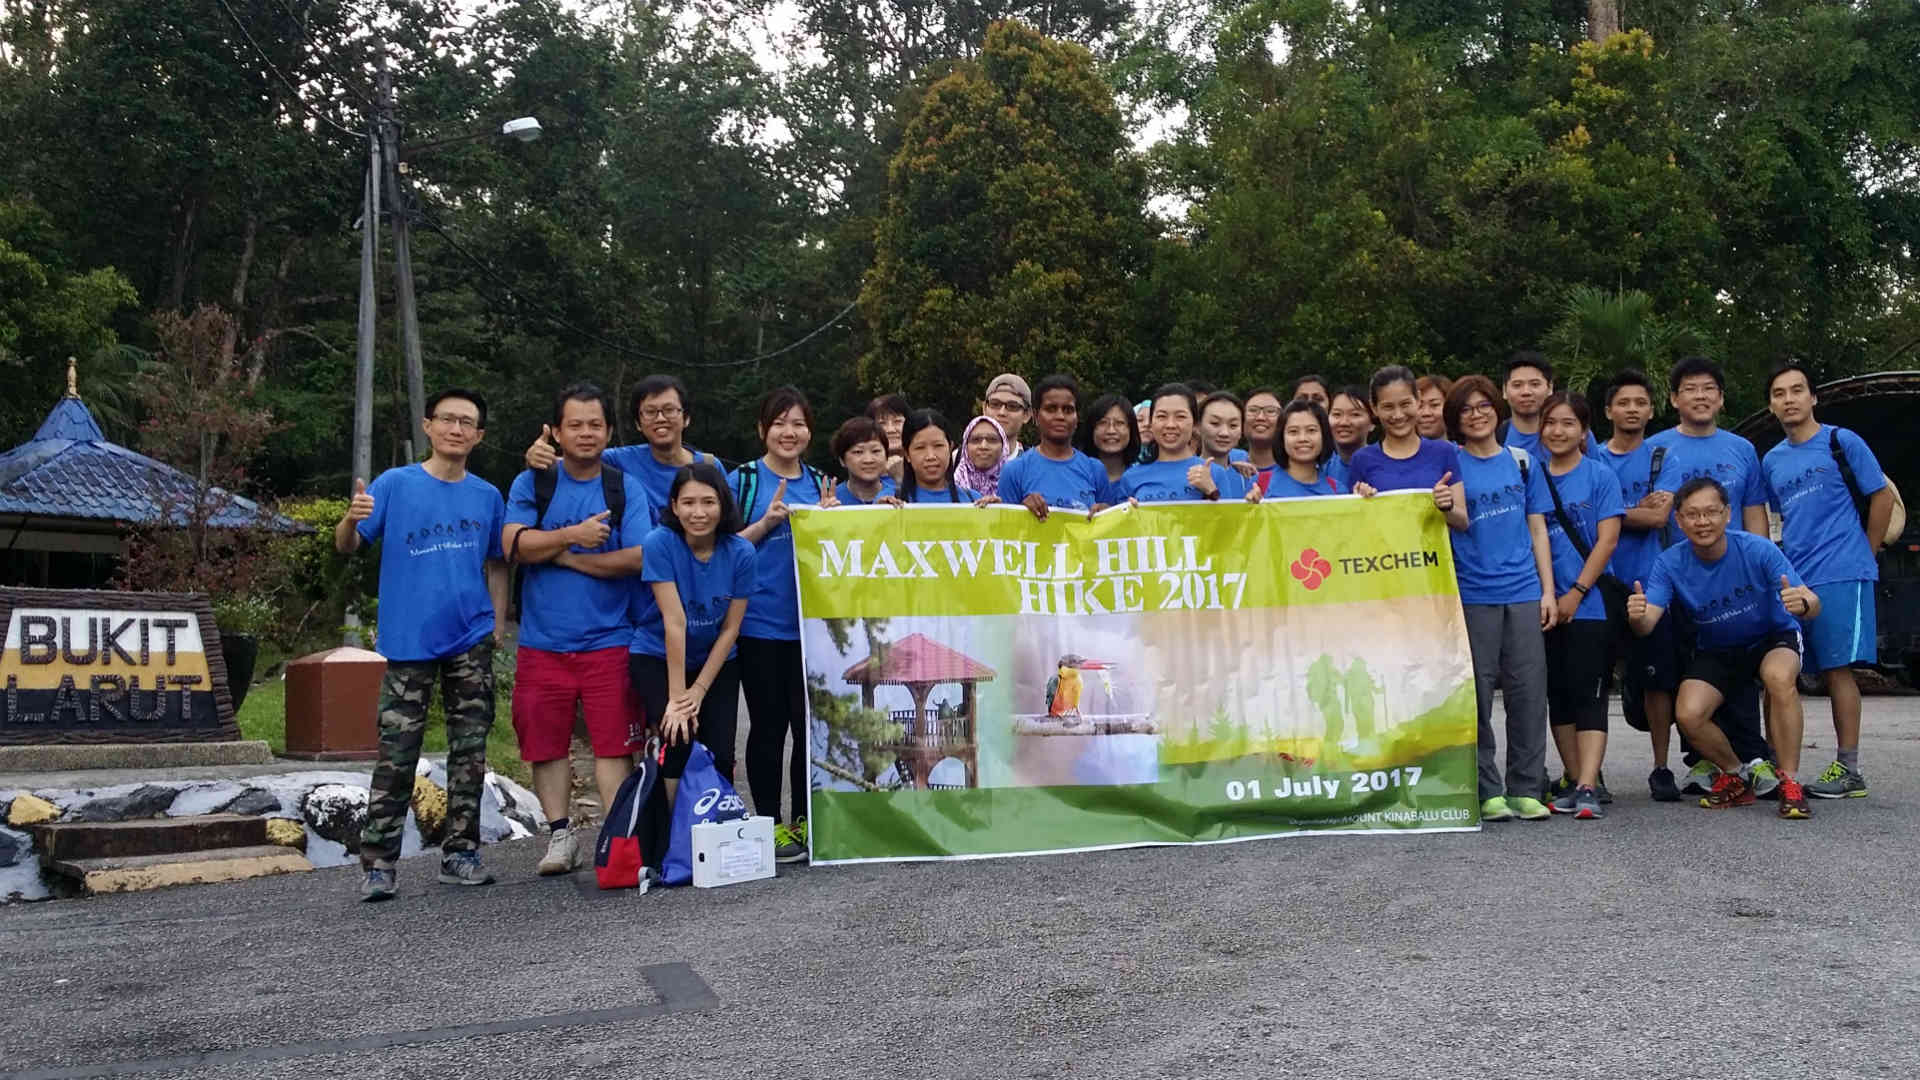 csr-Maxwell-Hill-Hike-01-July-2017